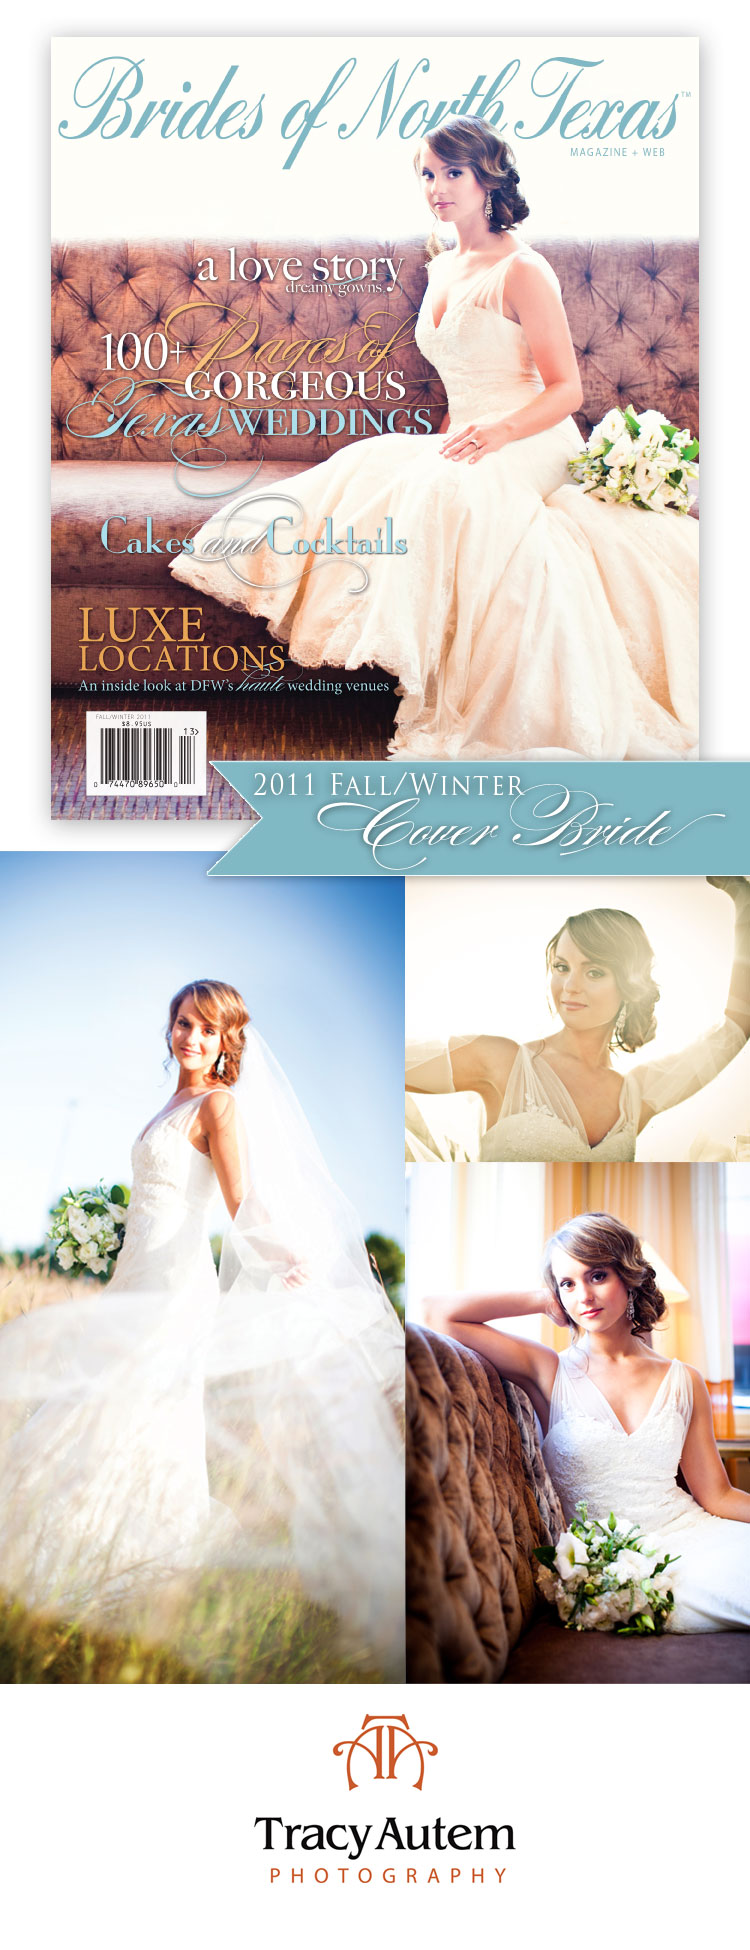 Brides of North Texas - Kendall Kirkham Cover Bride